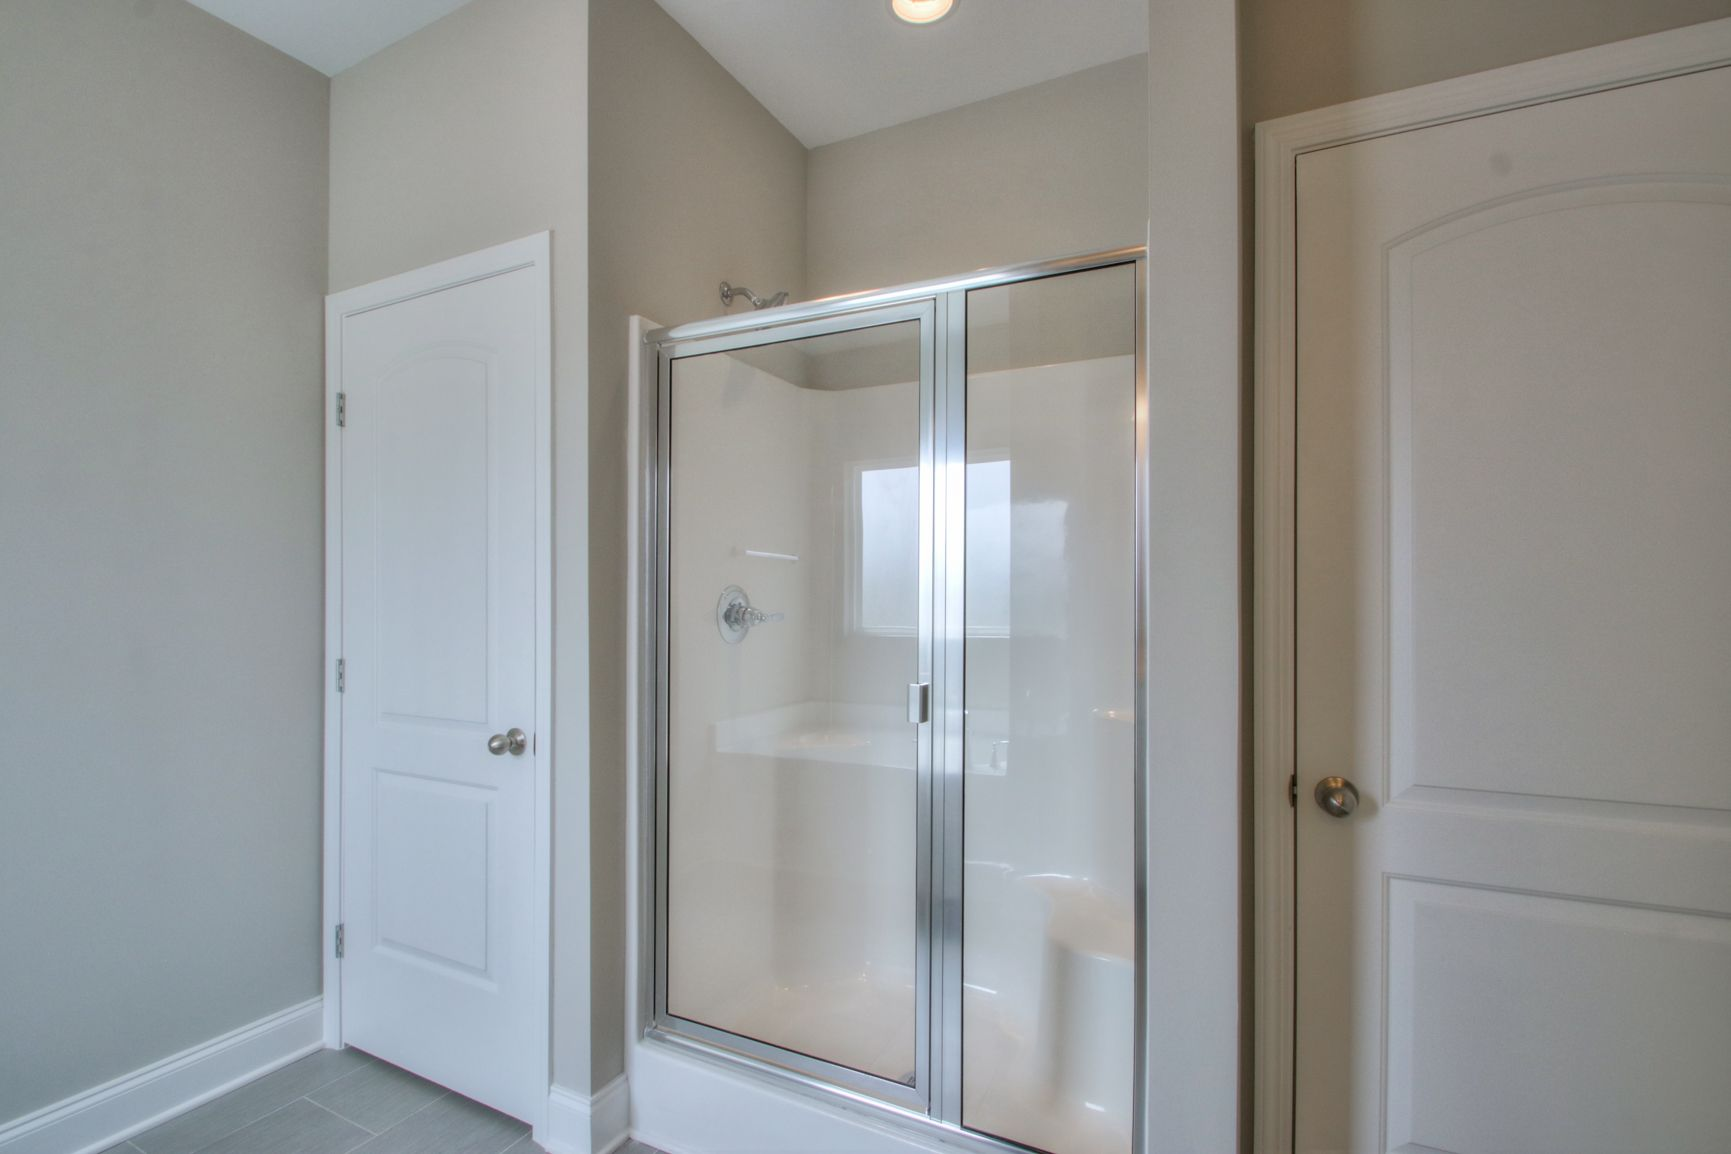 Bathroom featured in The Cambridge By Goodall Homes in Owensboro, KY